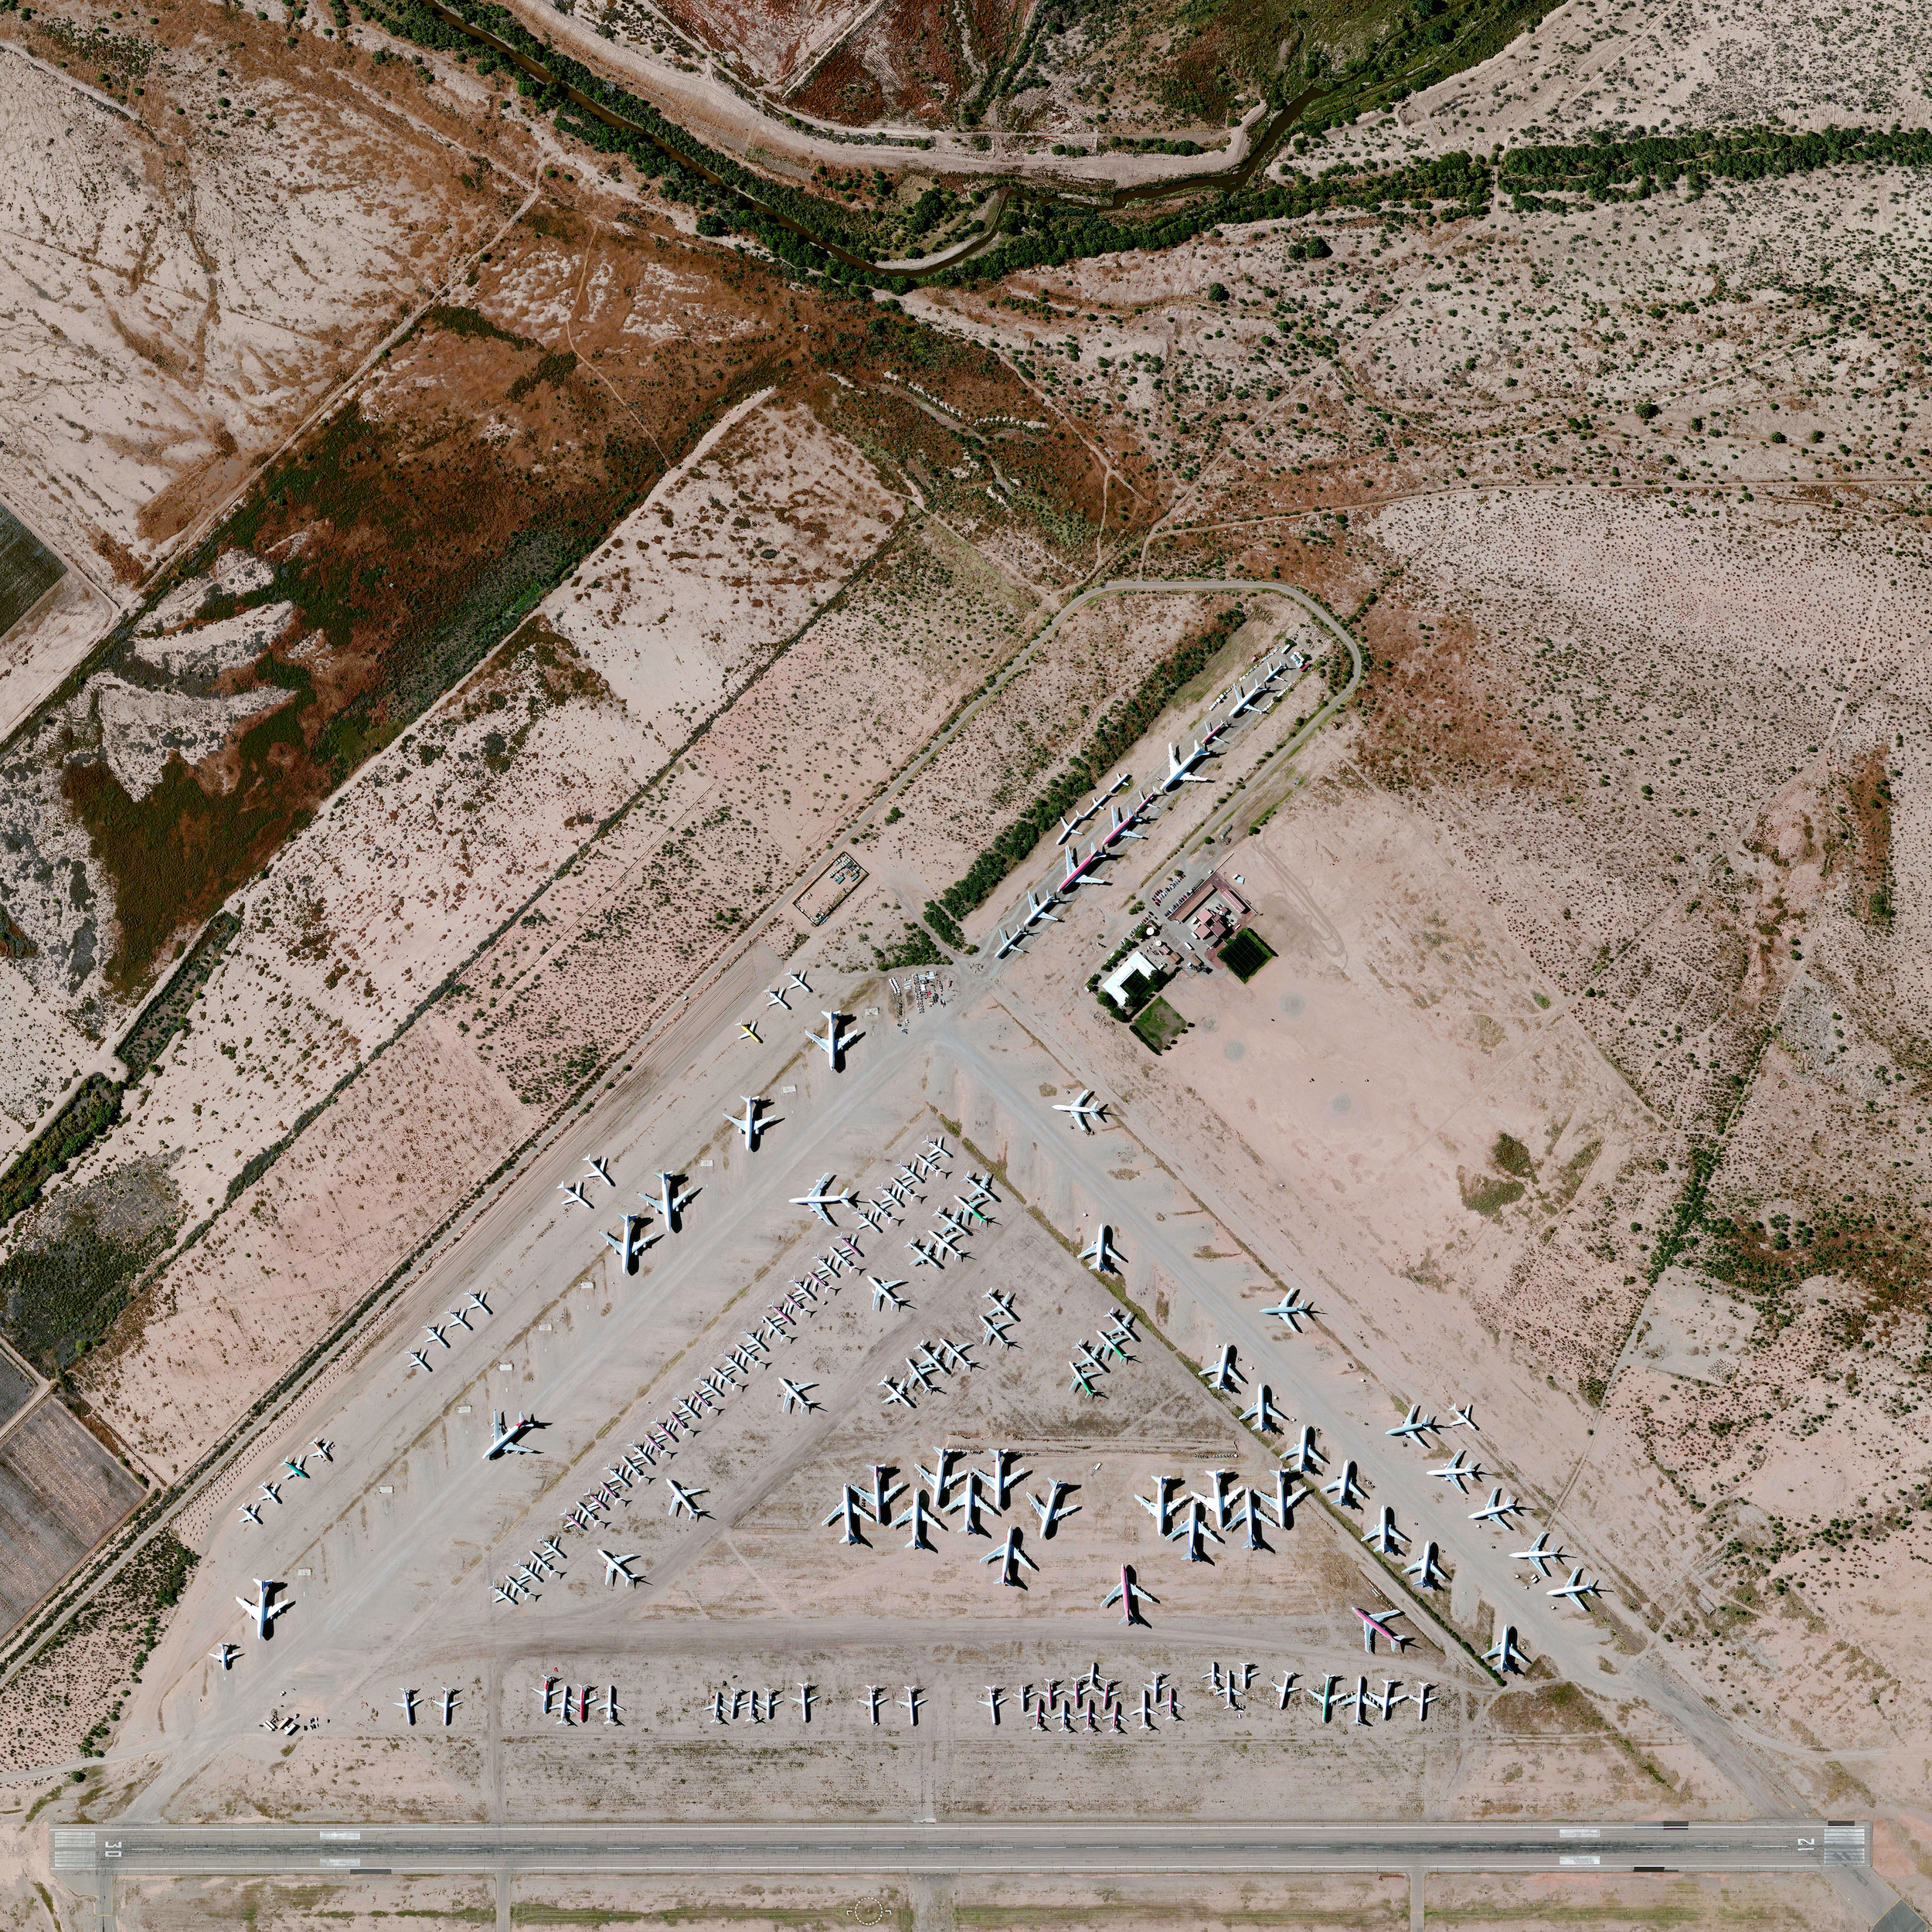 9/25/2015   Pinal Airpark   Marana, Arizona, USA  32.505891169°, -111.330163742°    Pinal Airpark is located in Marana, Arizona, United States. The facility primarily functions as a boneyard for hundreds of civilian commercial aircraft because the area's dry, desert climate reduces corrosion. The site, which was constructed in 1942, opened up for public viewing for the first time this past year.